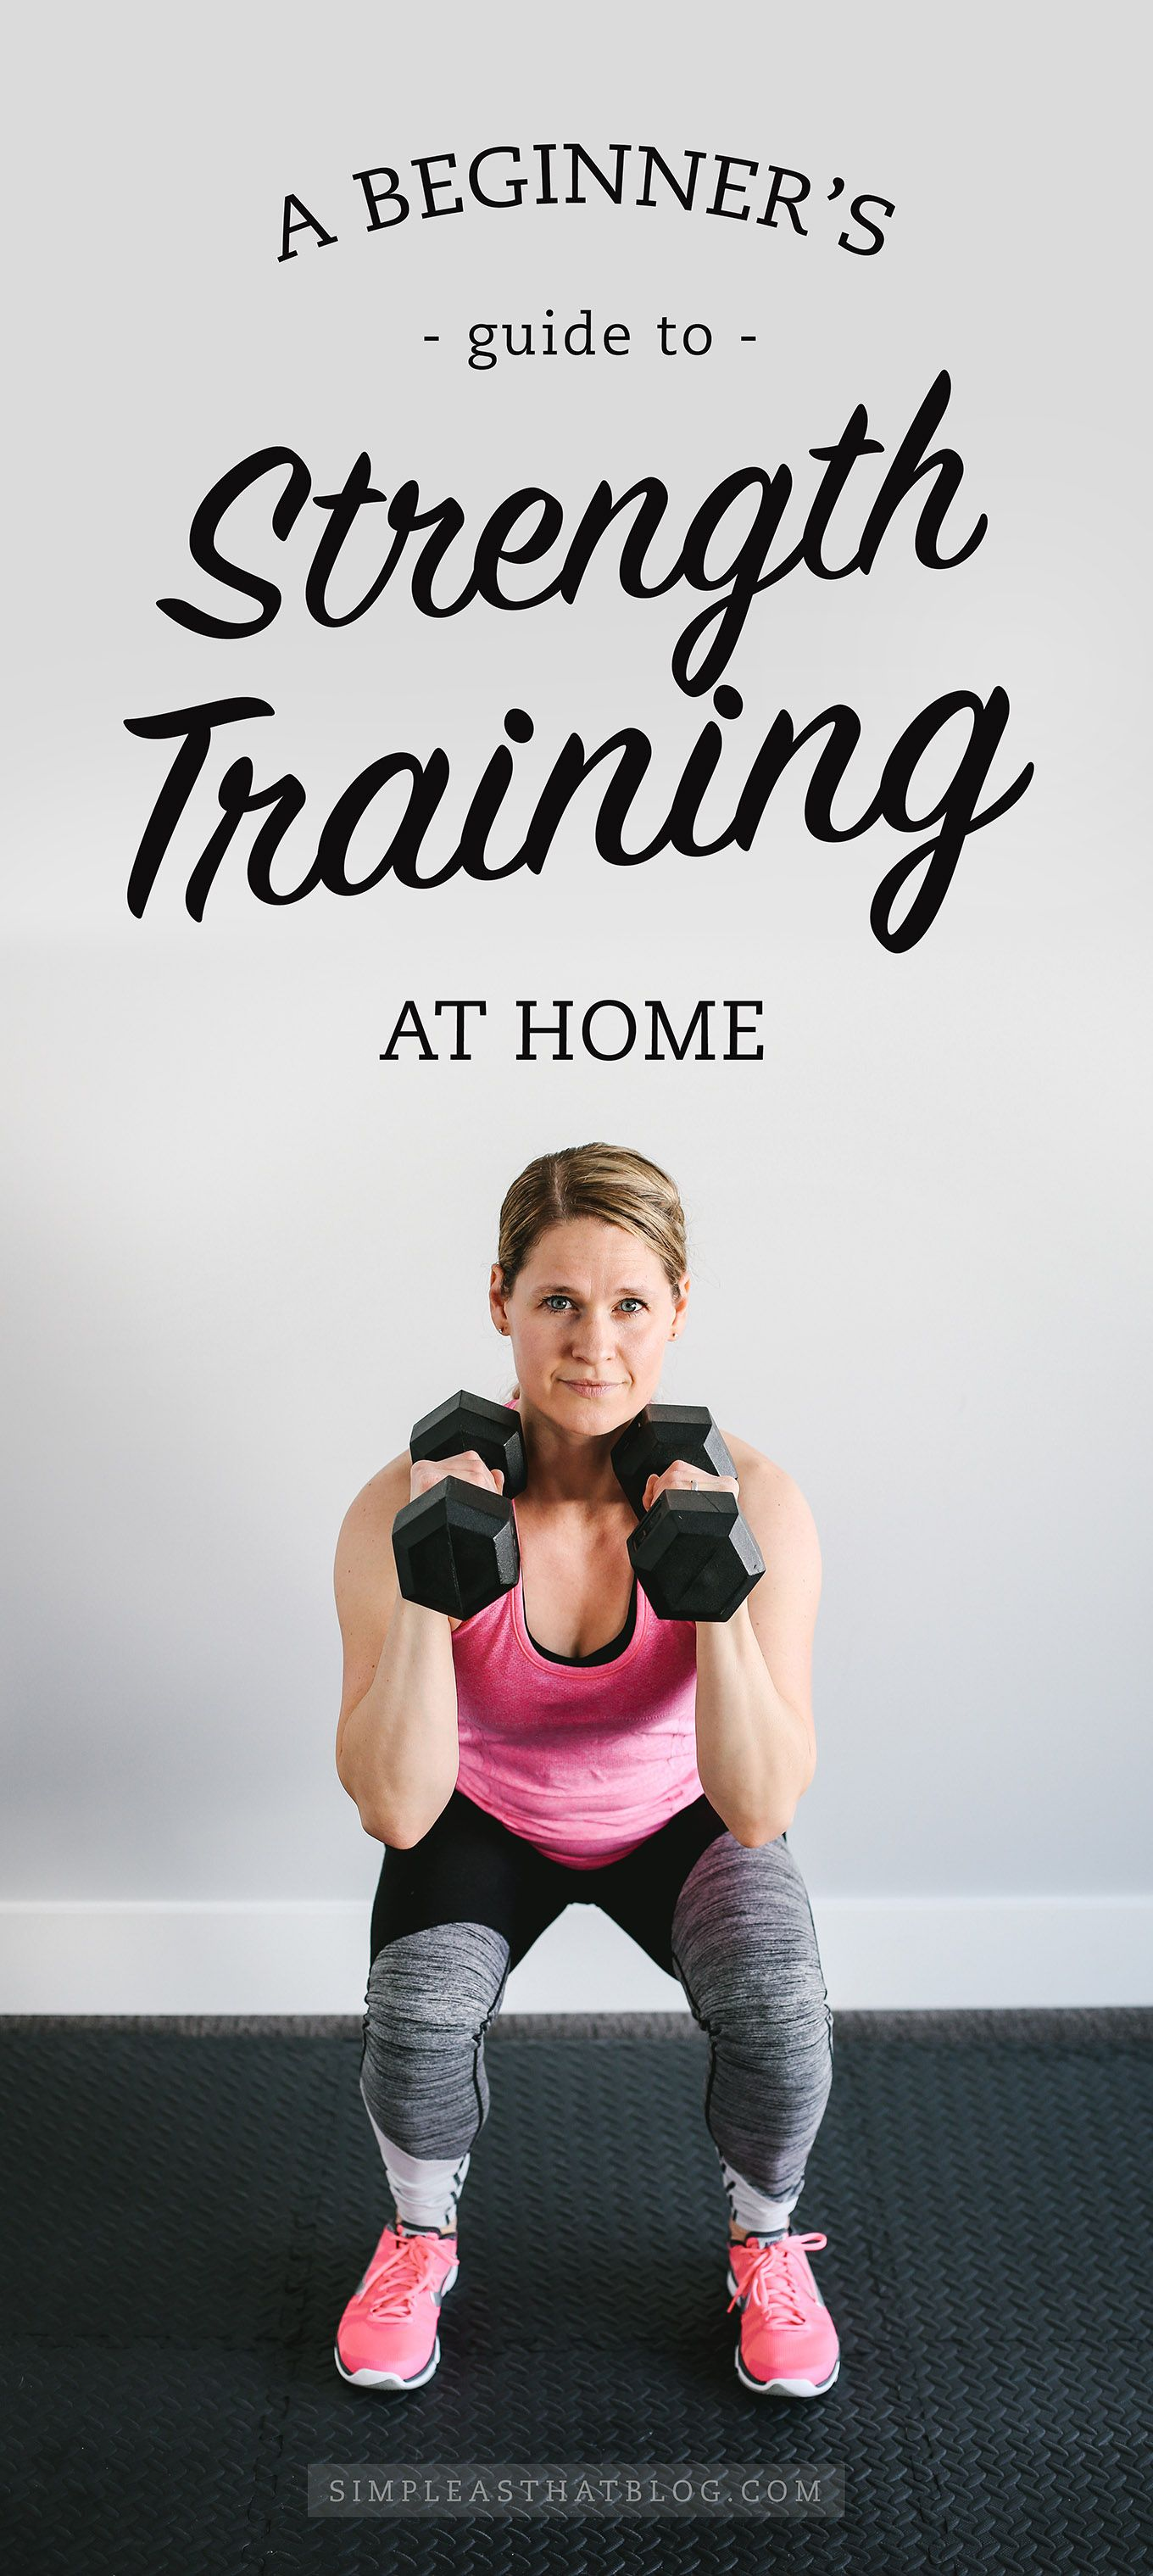 The Beginners Guide to Strength Training